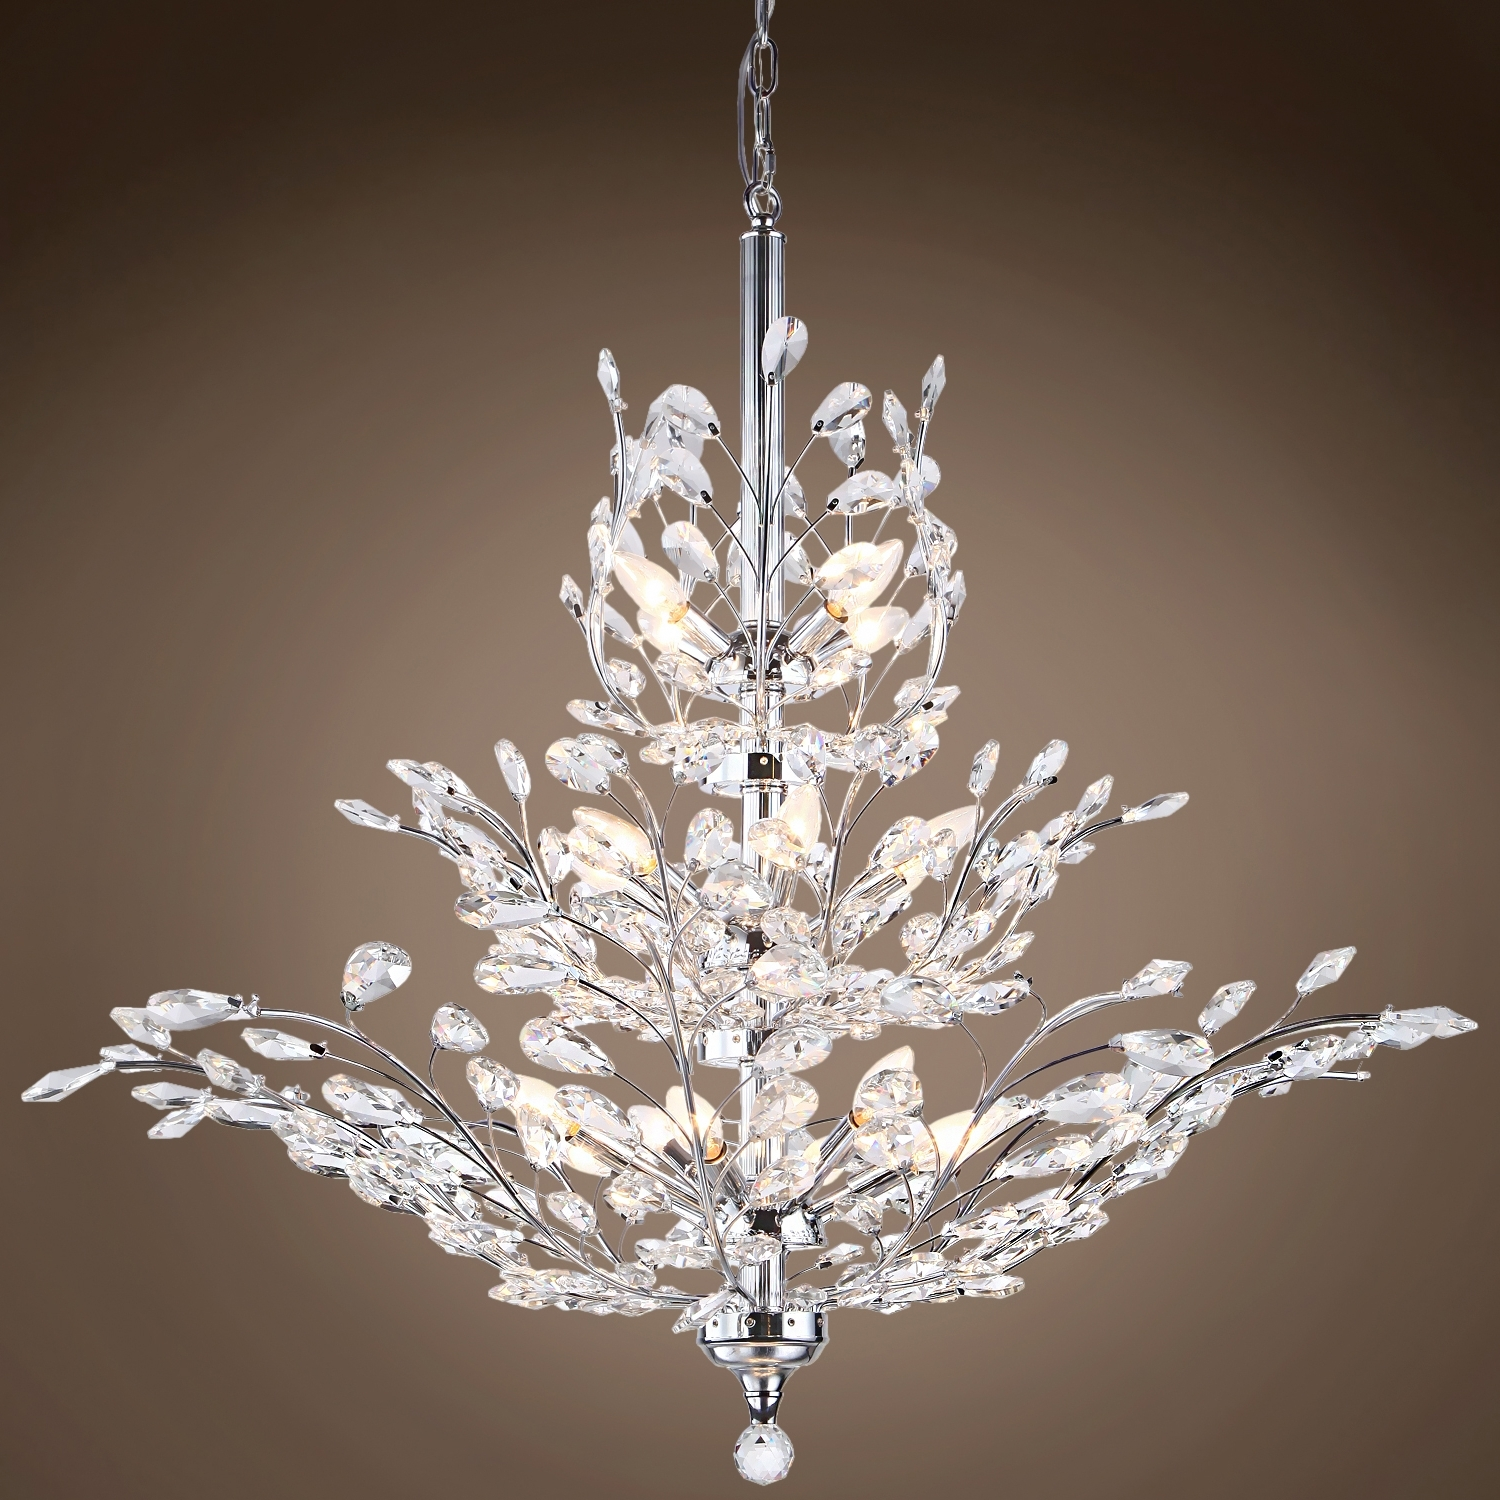 Most Recently Released Joshua Marshal 700109 Branch Of Light 13 Light Chrome Chandelier regarding Branch Crystal Chandelier